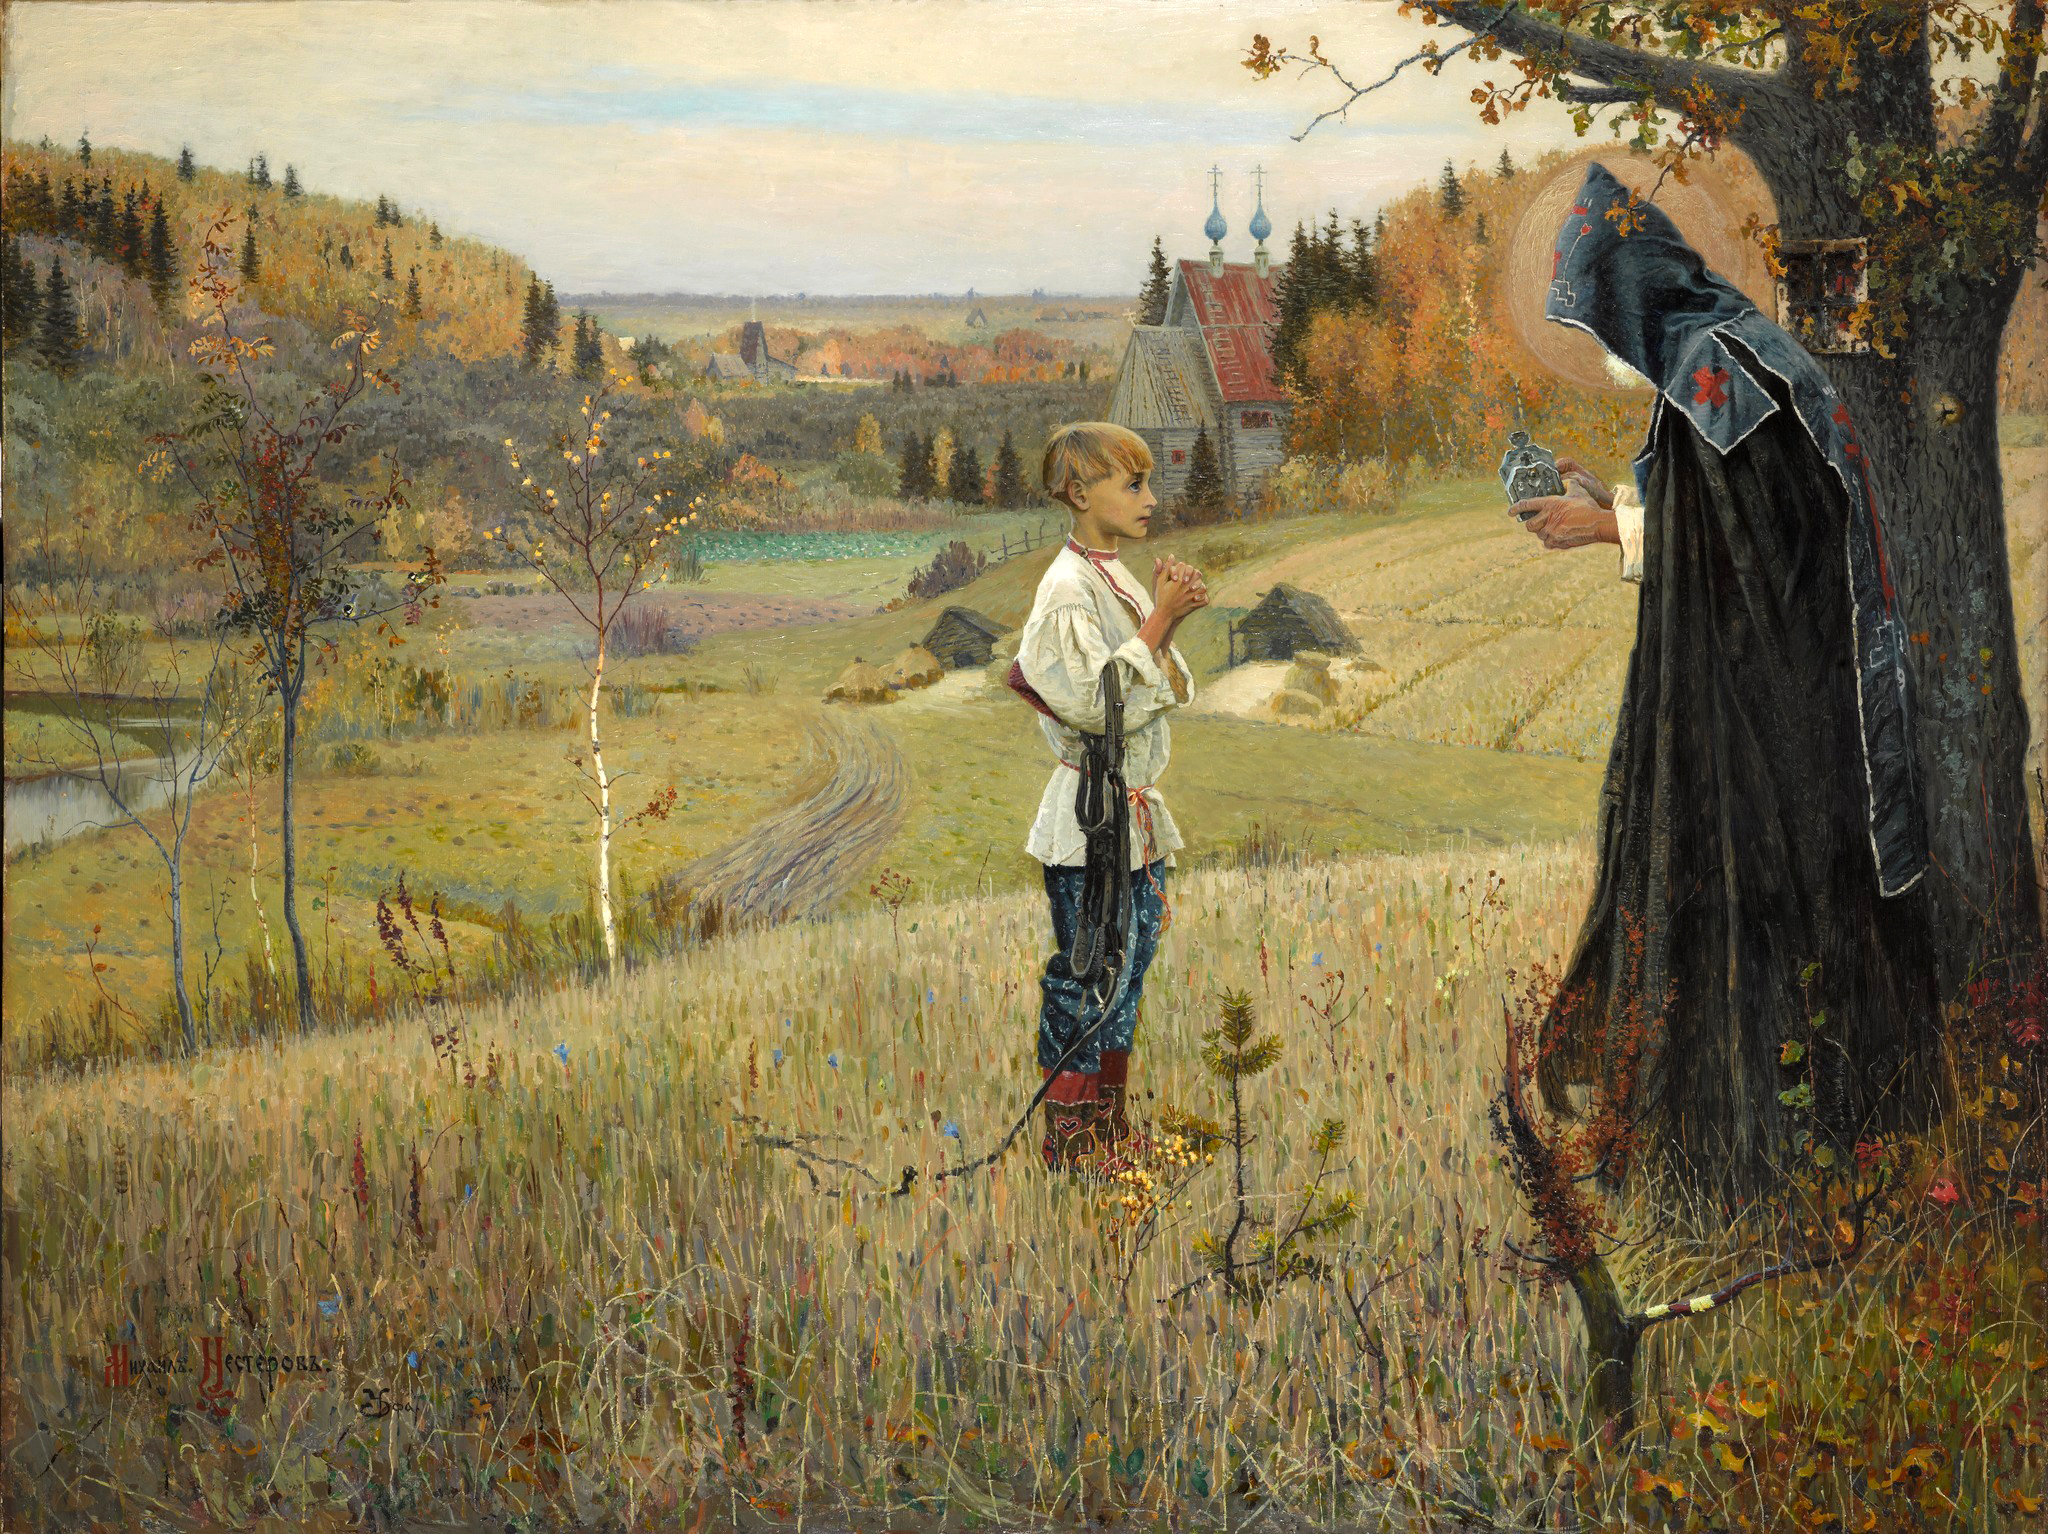 https://i2.wp.com/upload.wikimedia.org/wikipedia/commons/2/26/Mikhail_Nesterov_001.jpg